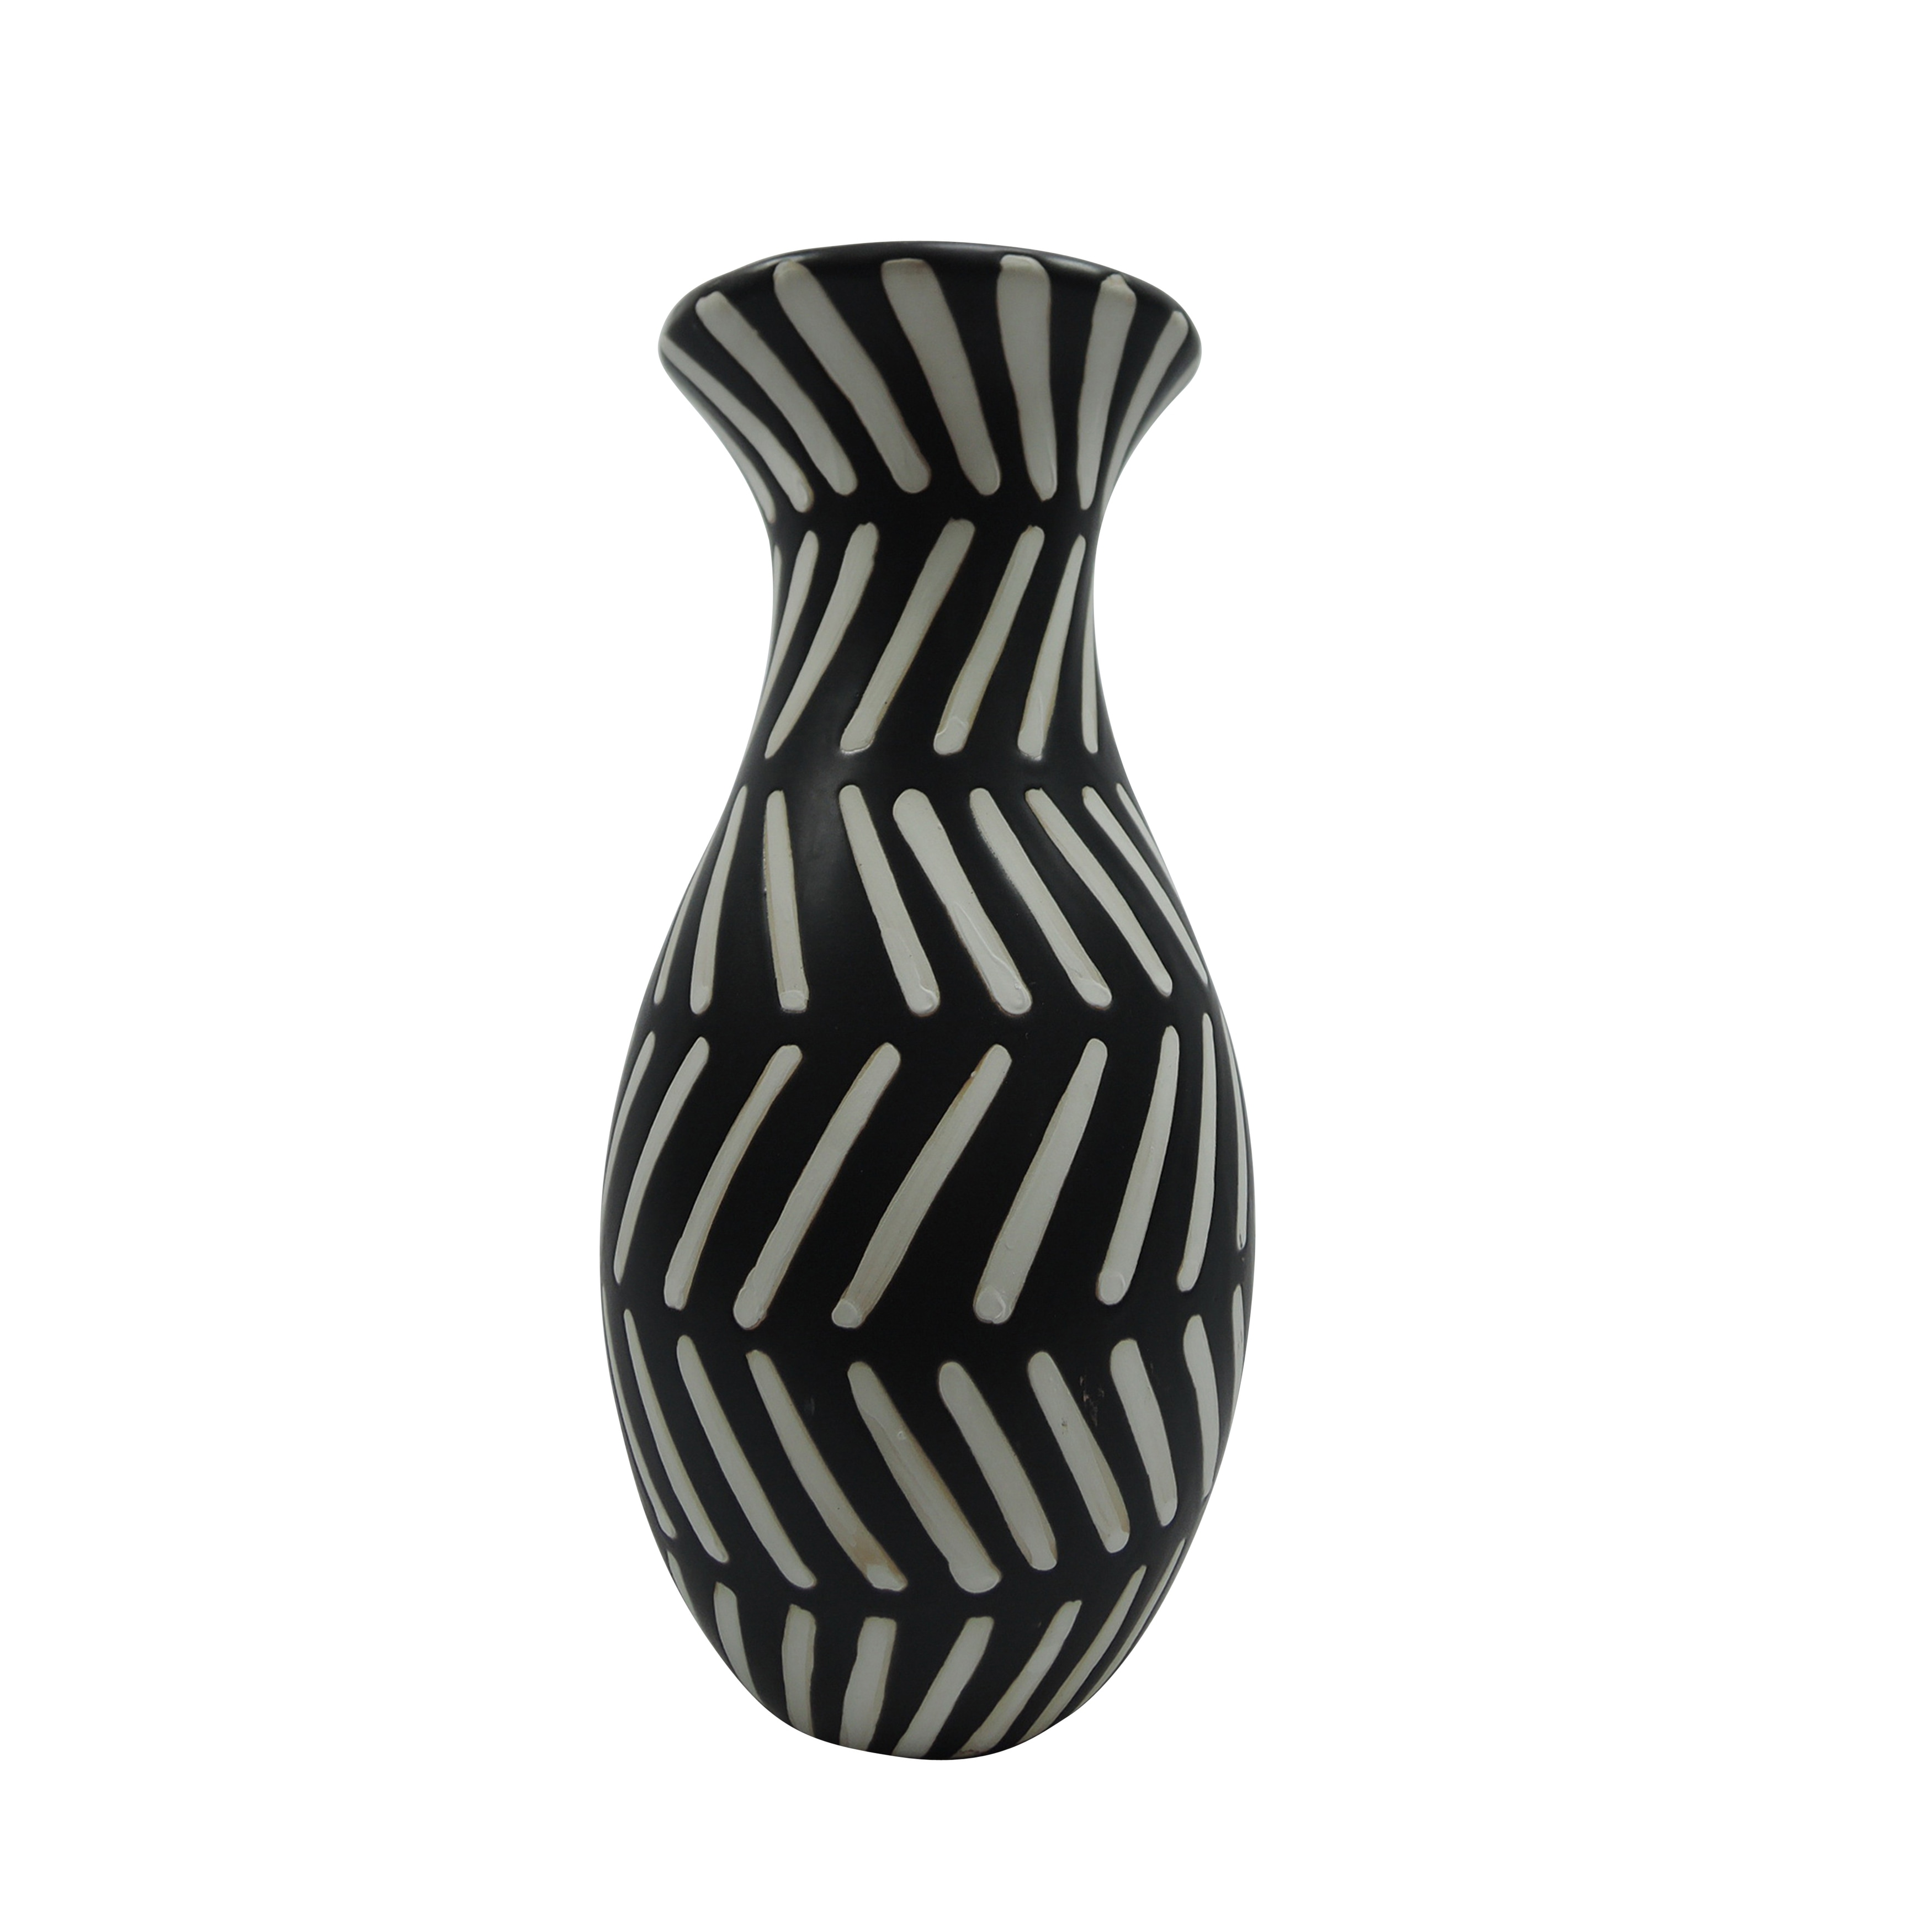 Ceramic Curved Shaped Vase with Tribal Pattern, Black and White